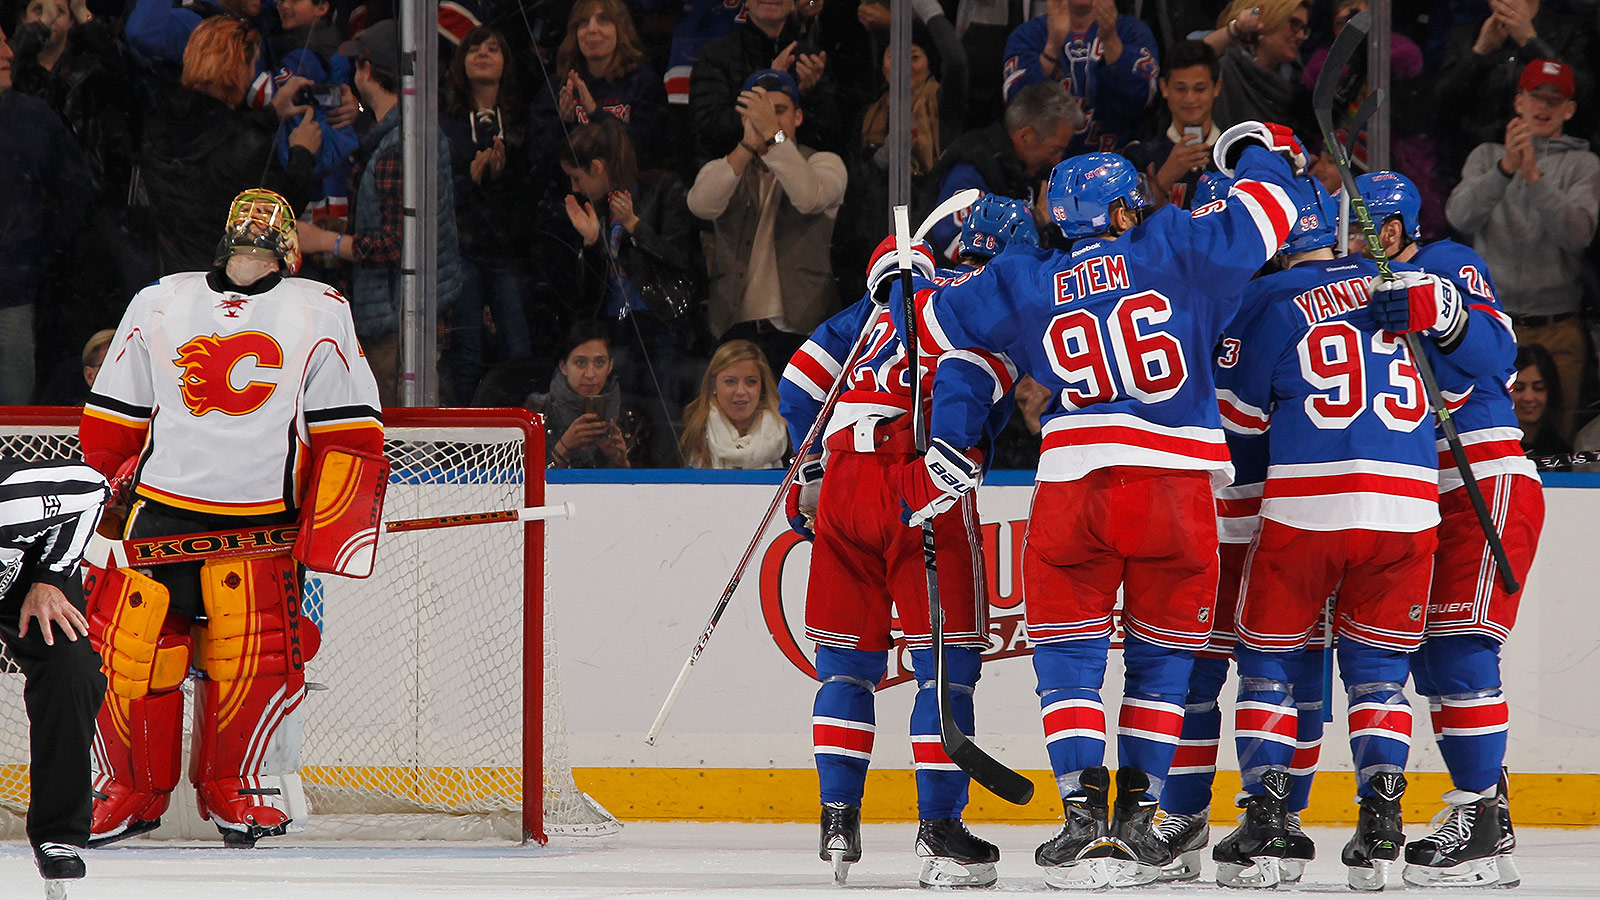 Girardi leads Rangers to win, passes Messier in process